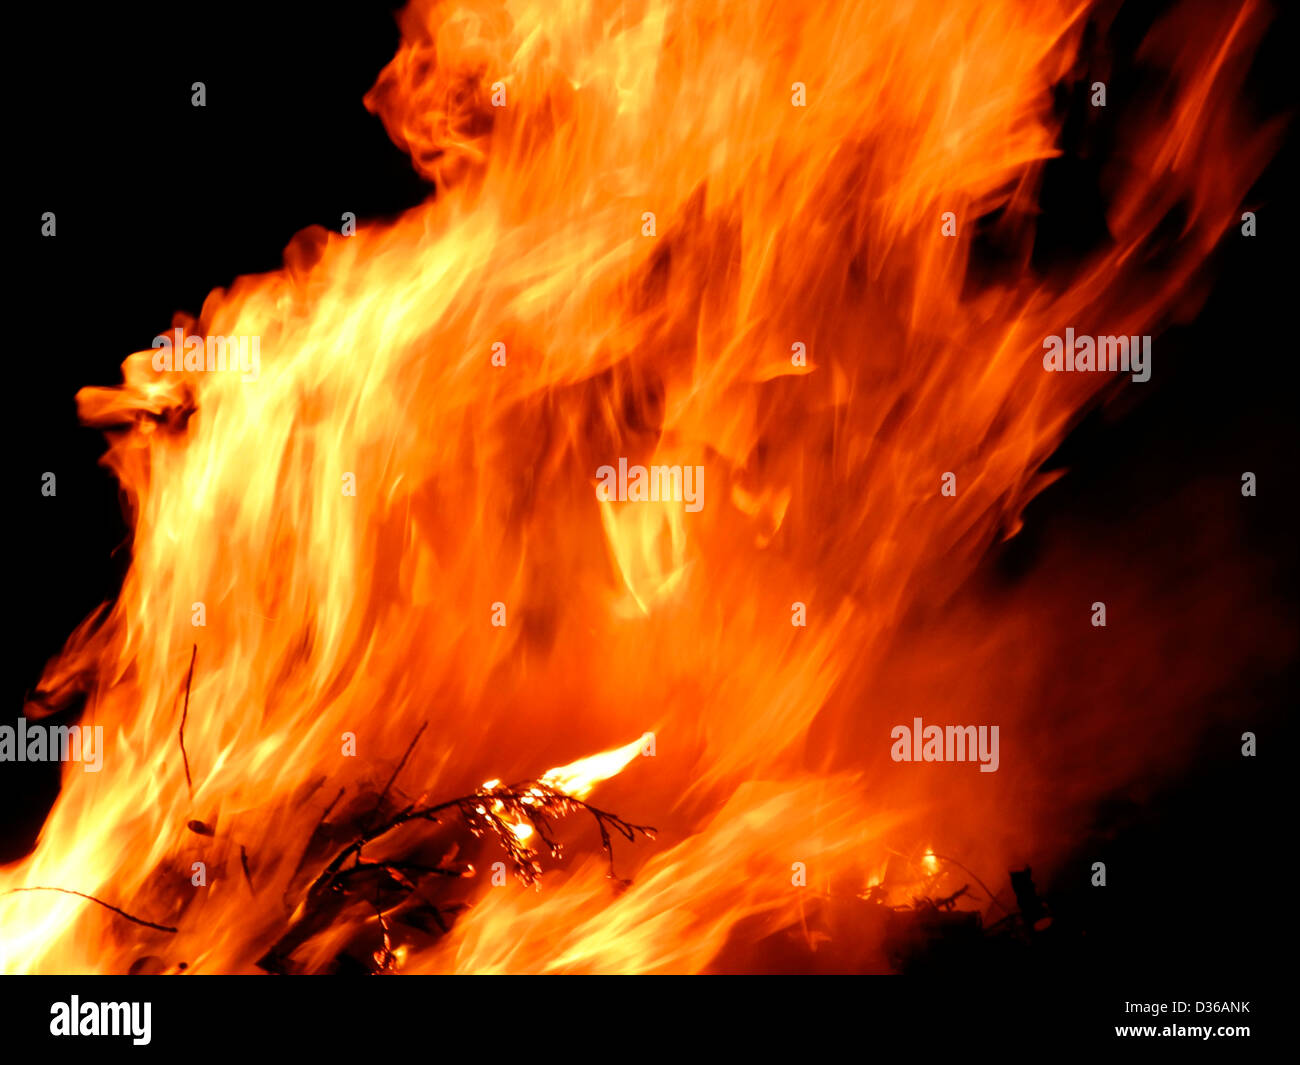 Flames fire burning conflagration inferno - Stock Image